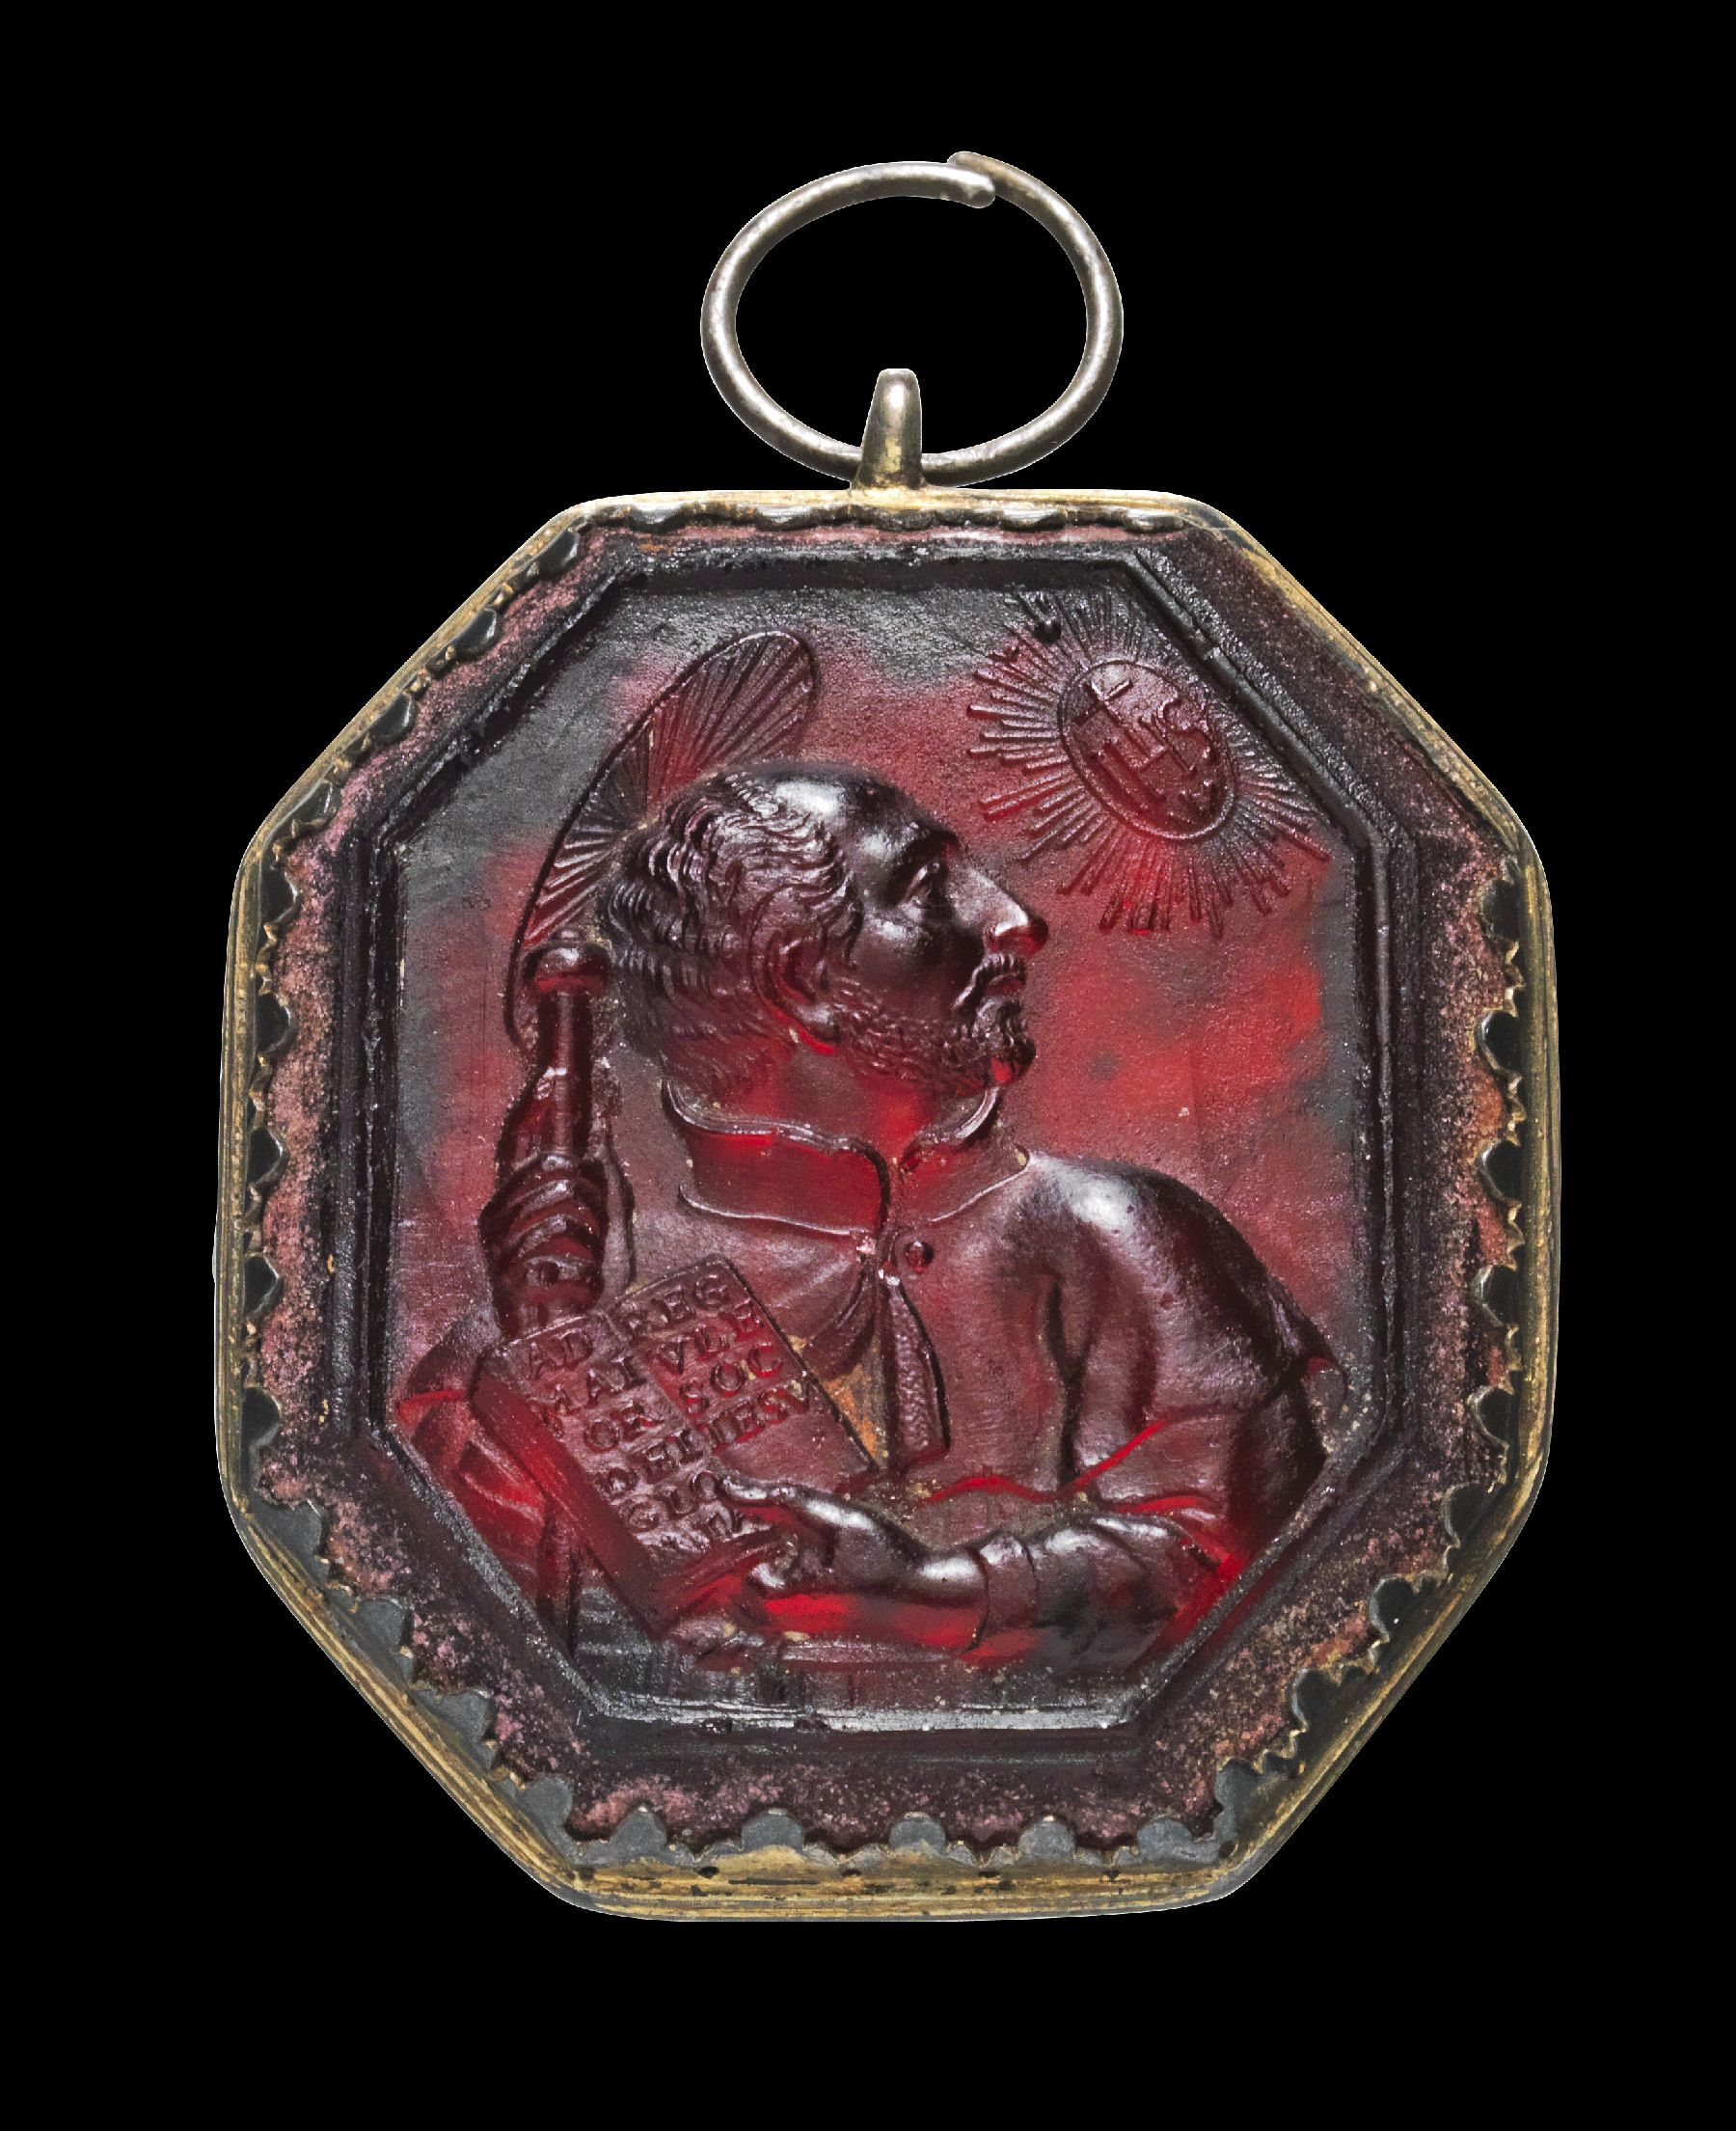 Octagonal cameo made of Bordeaux Red glass, mounted into a gilded silver medallion showing Ignatius of Loyola. End 16th - early 17th century.